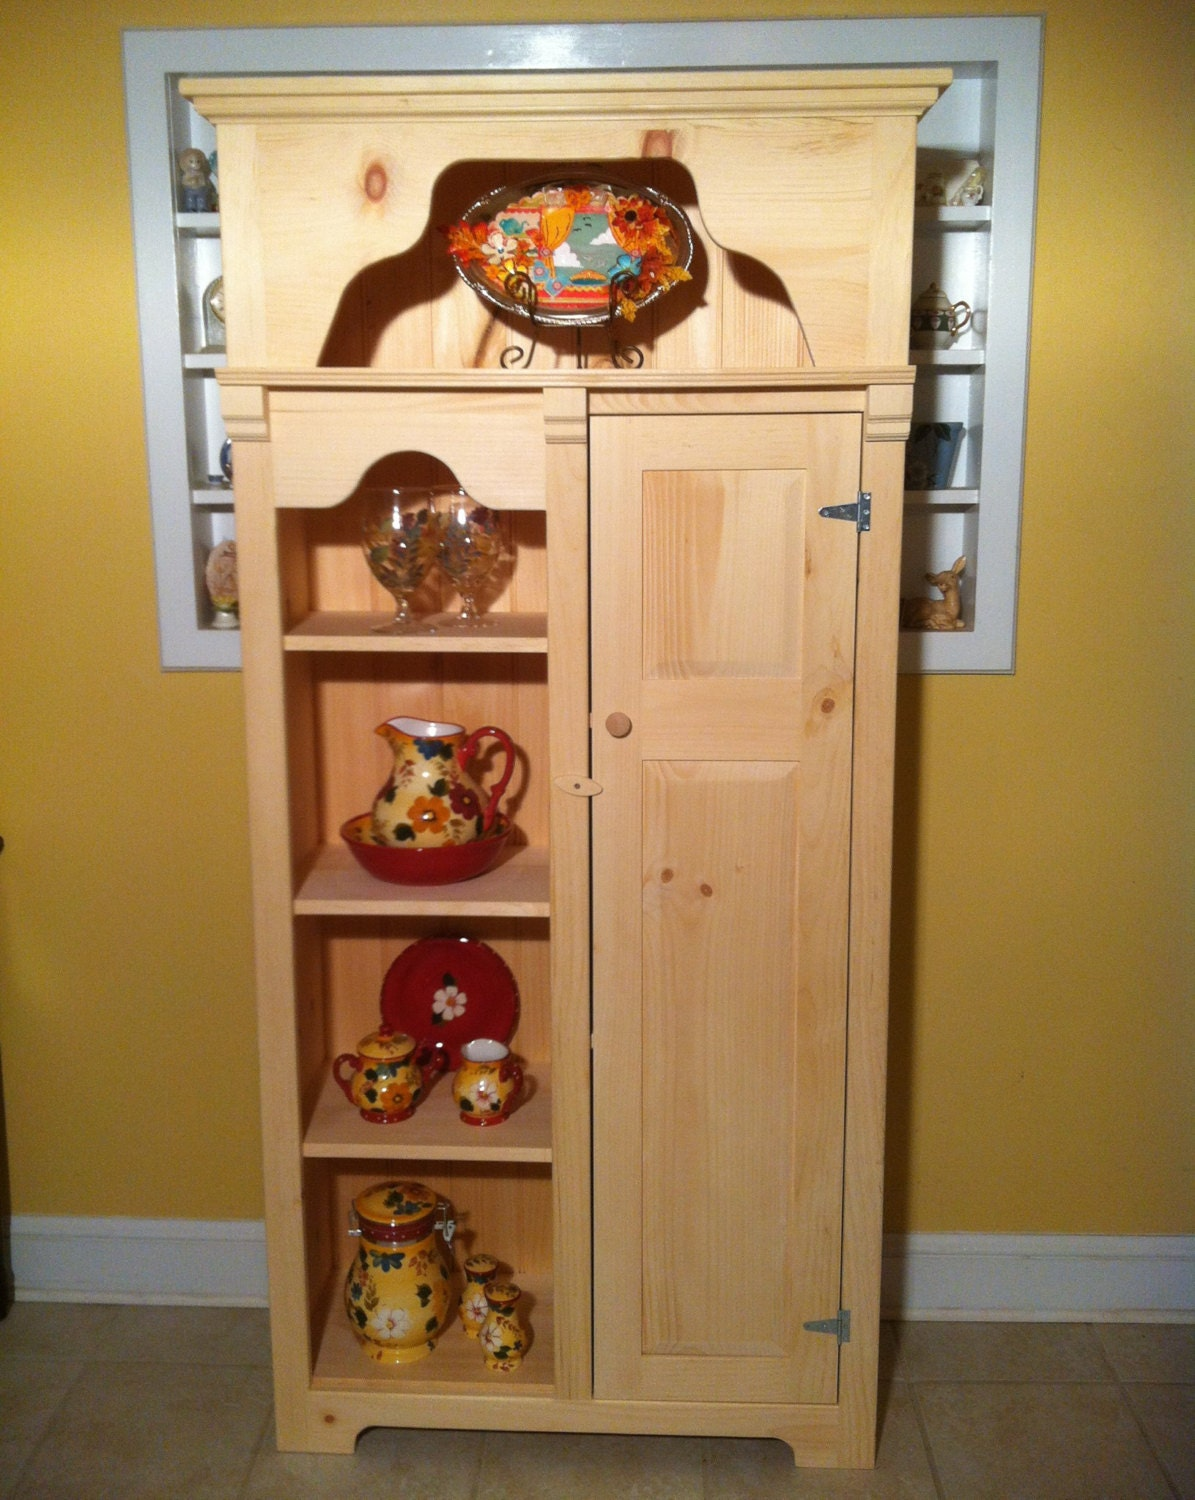 shaker style unfinished kitchen display cupboard by 2feetup